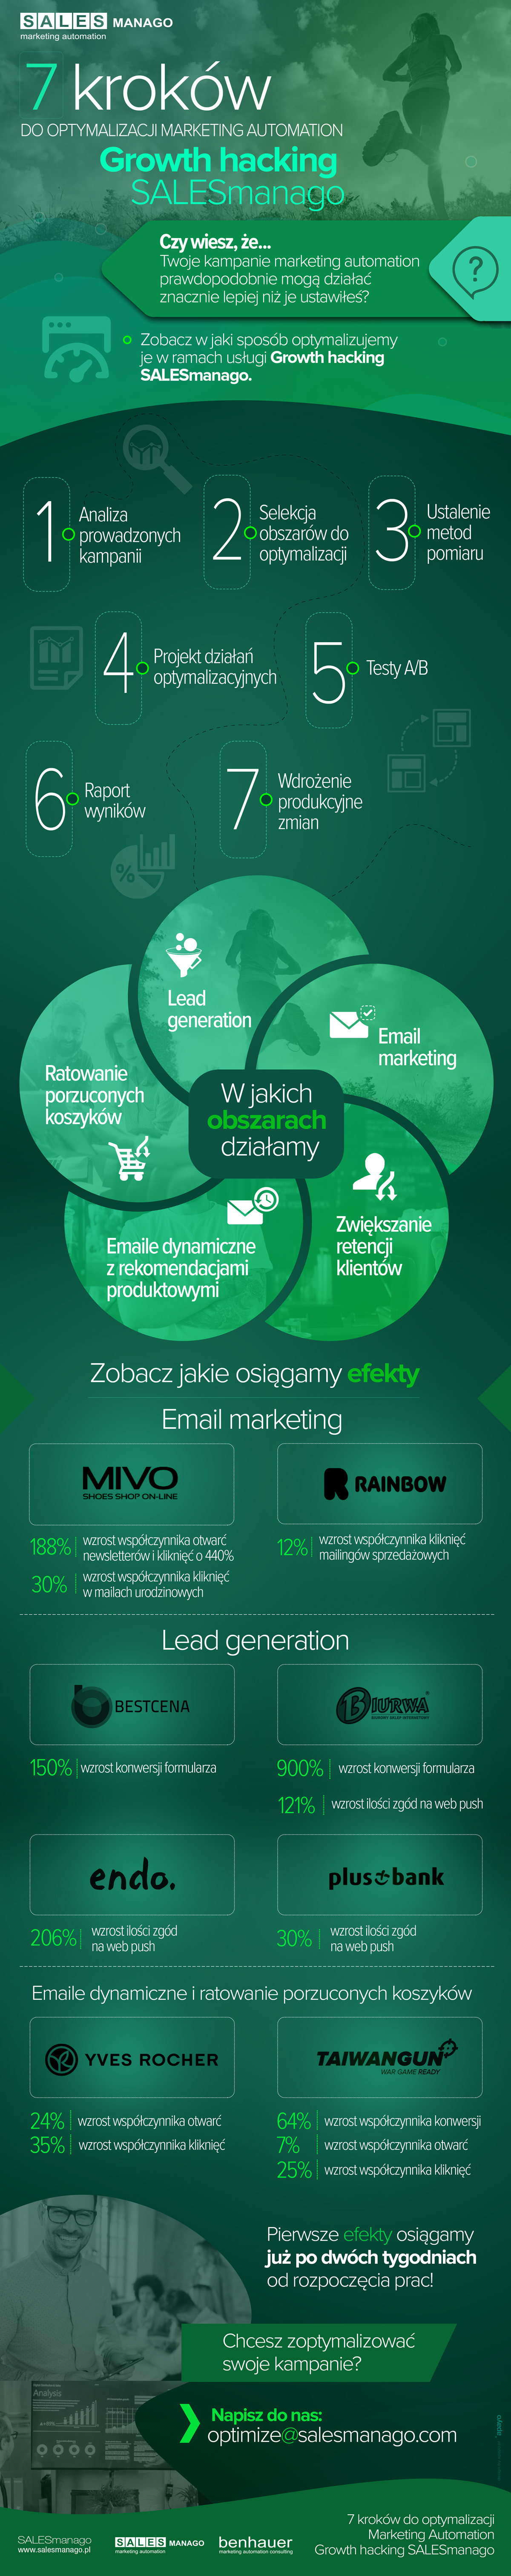 7 kroków do optymalizacji Marketing Automation - Growth Hacking SALESmanago